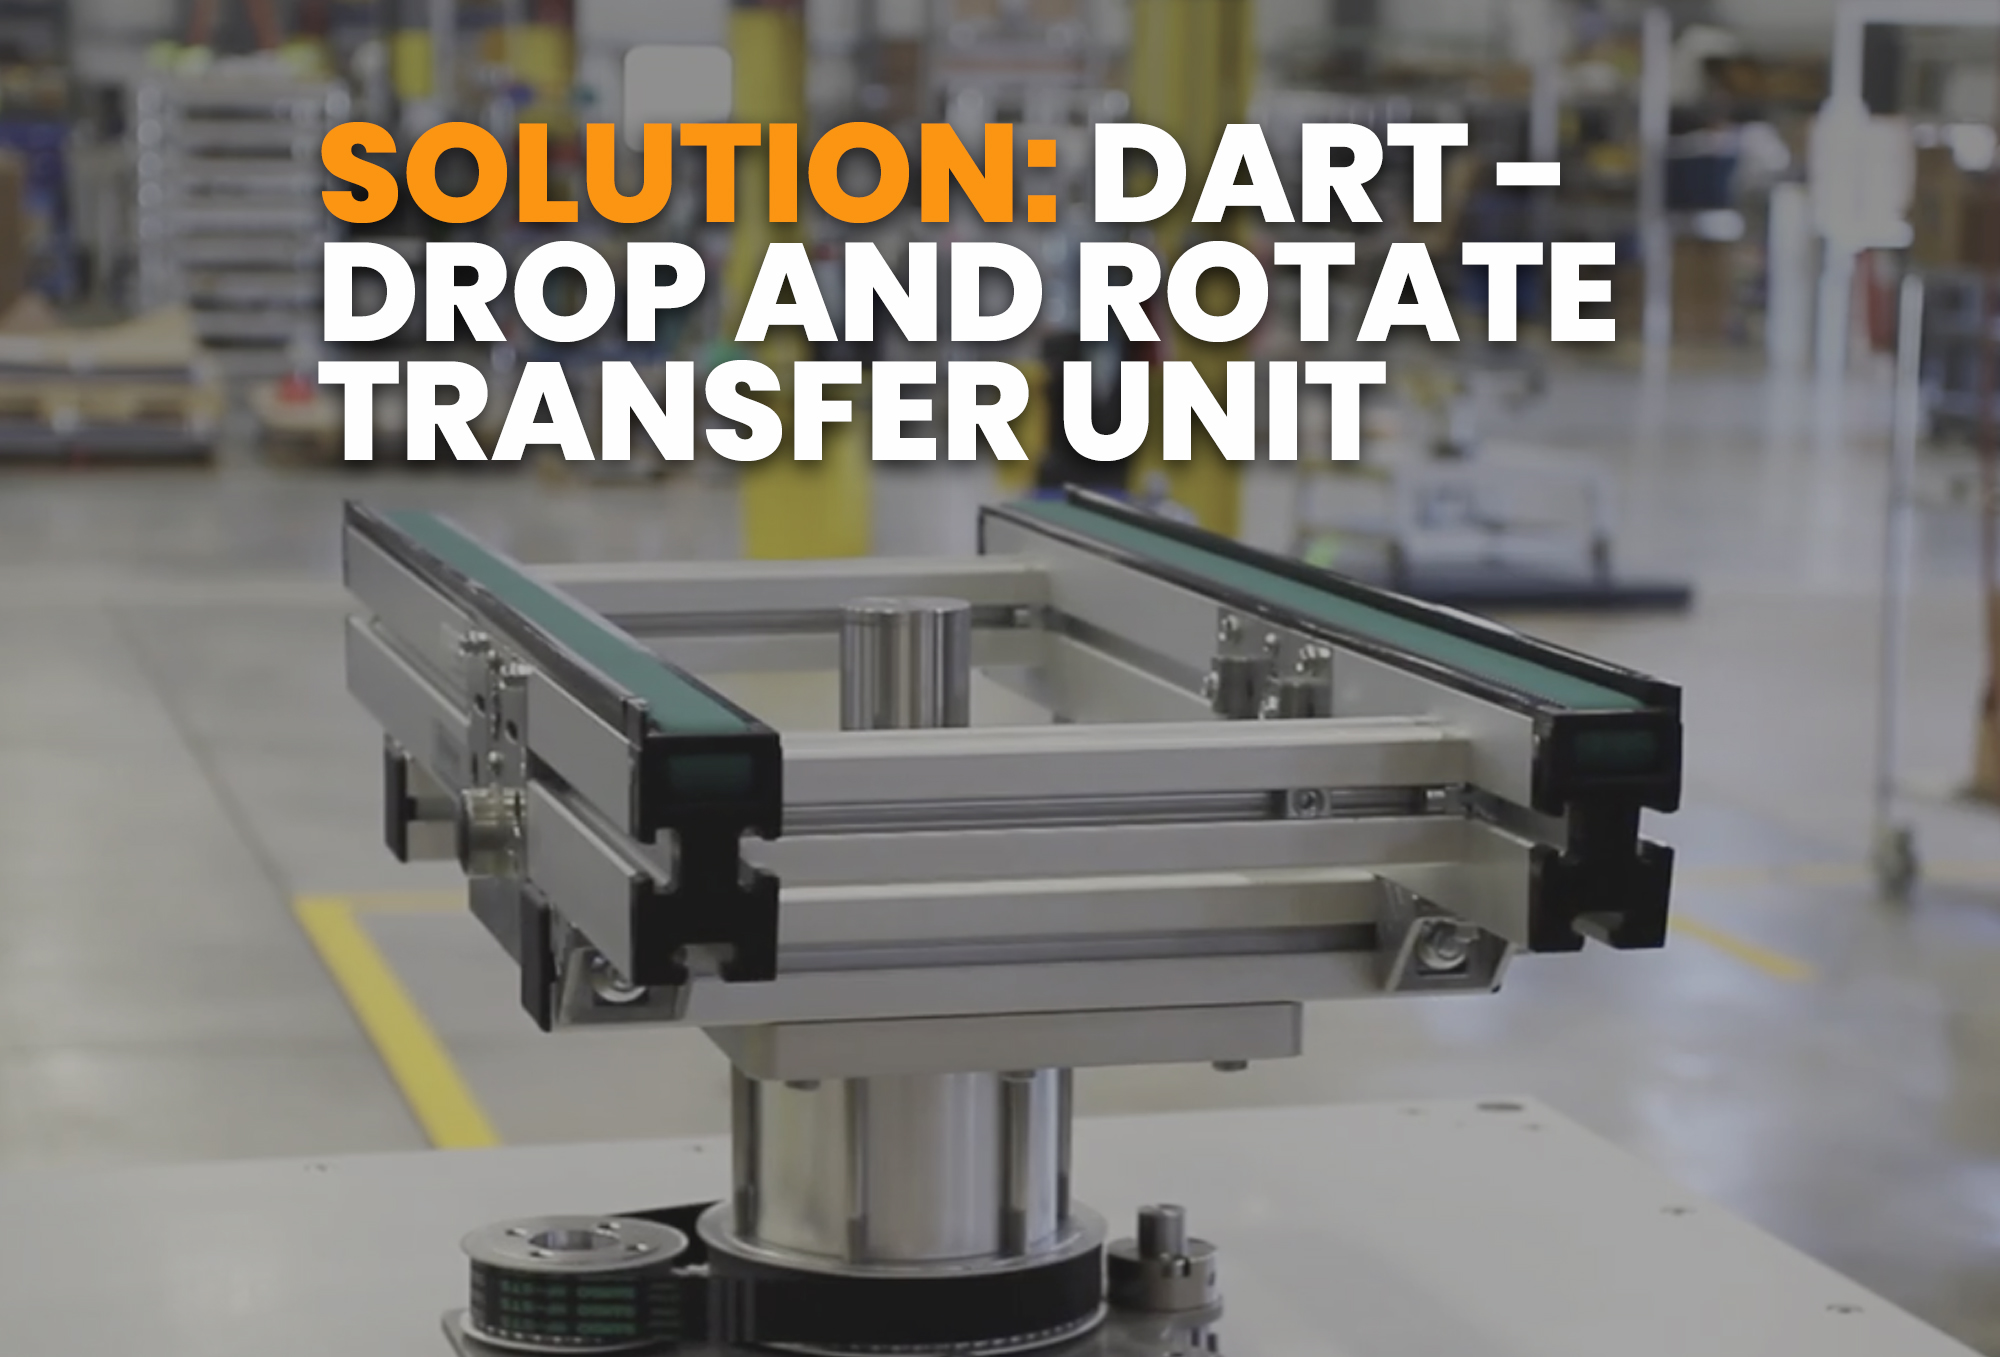 solution- DART - Drop and Rotate Transfer unit